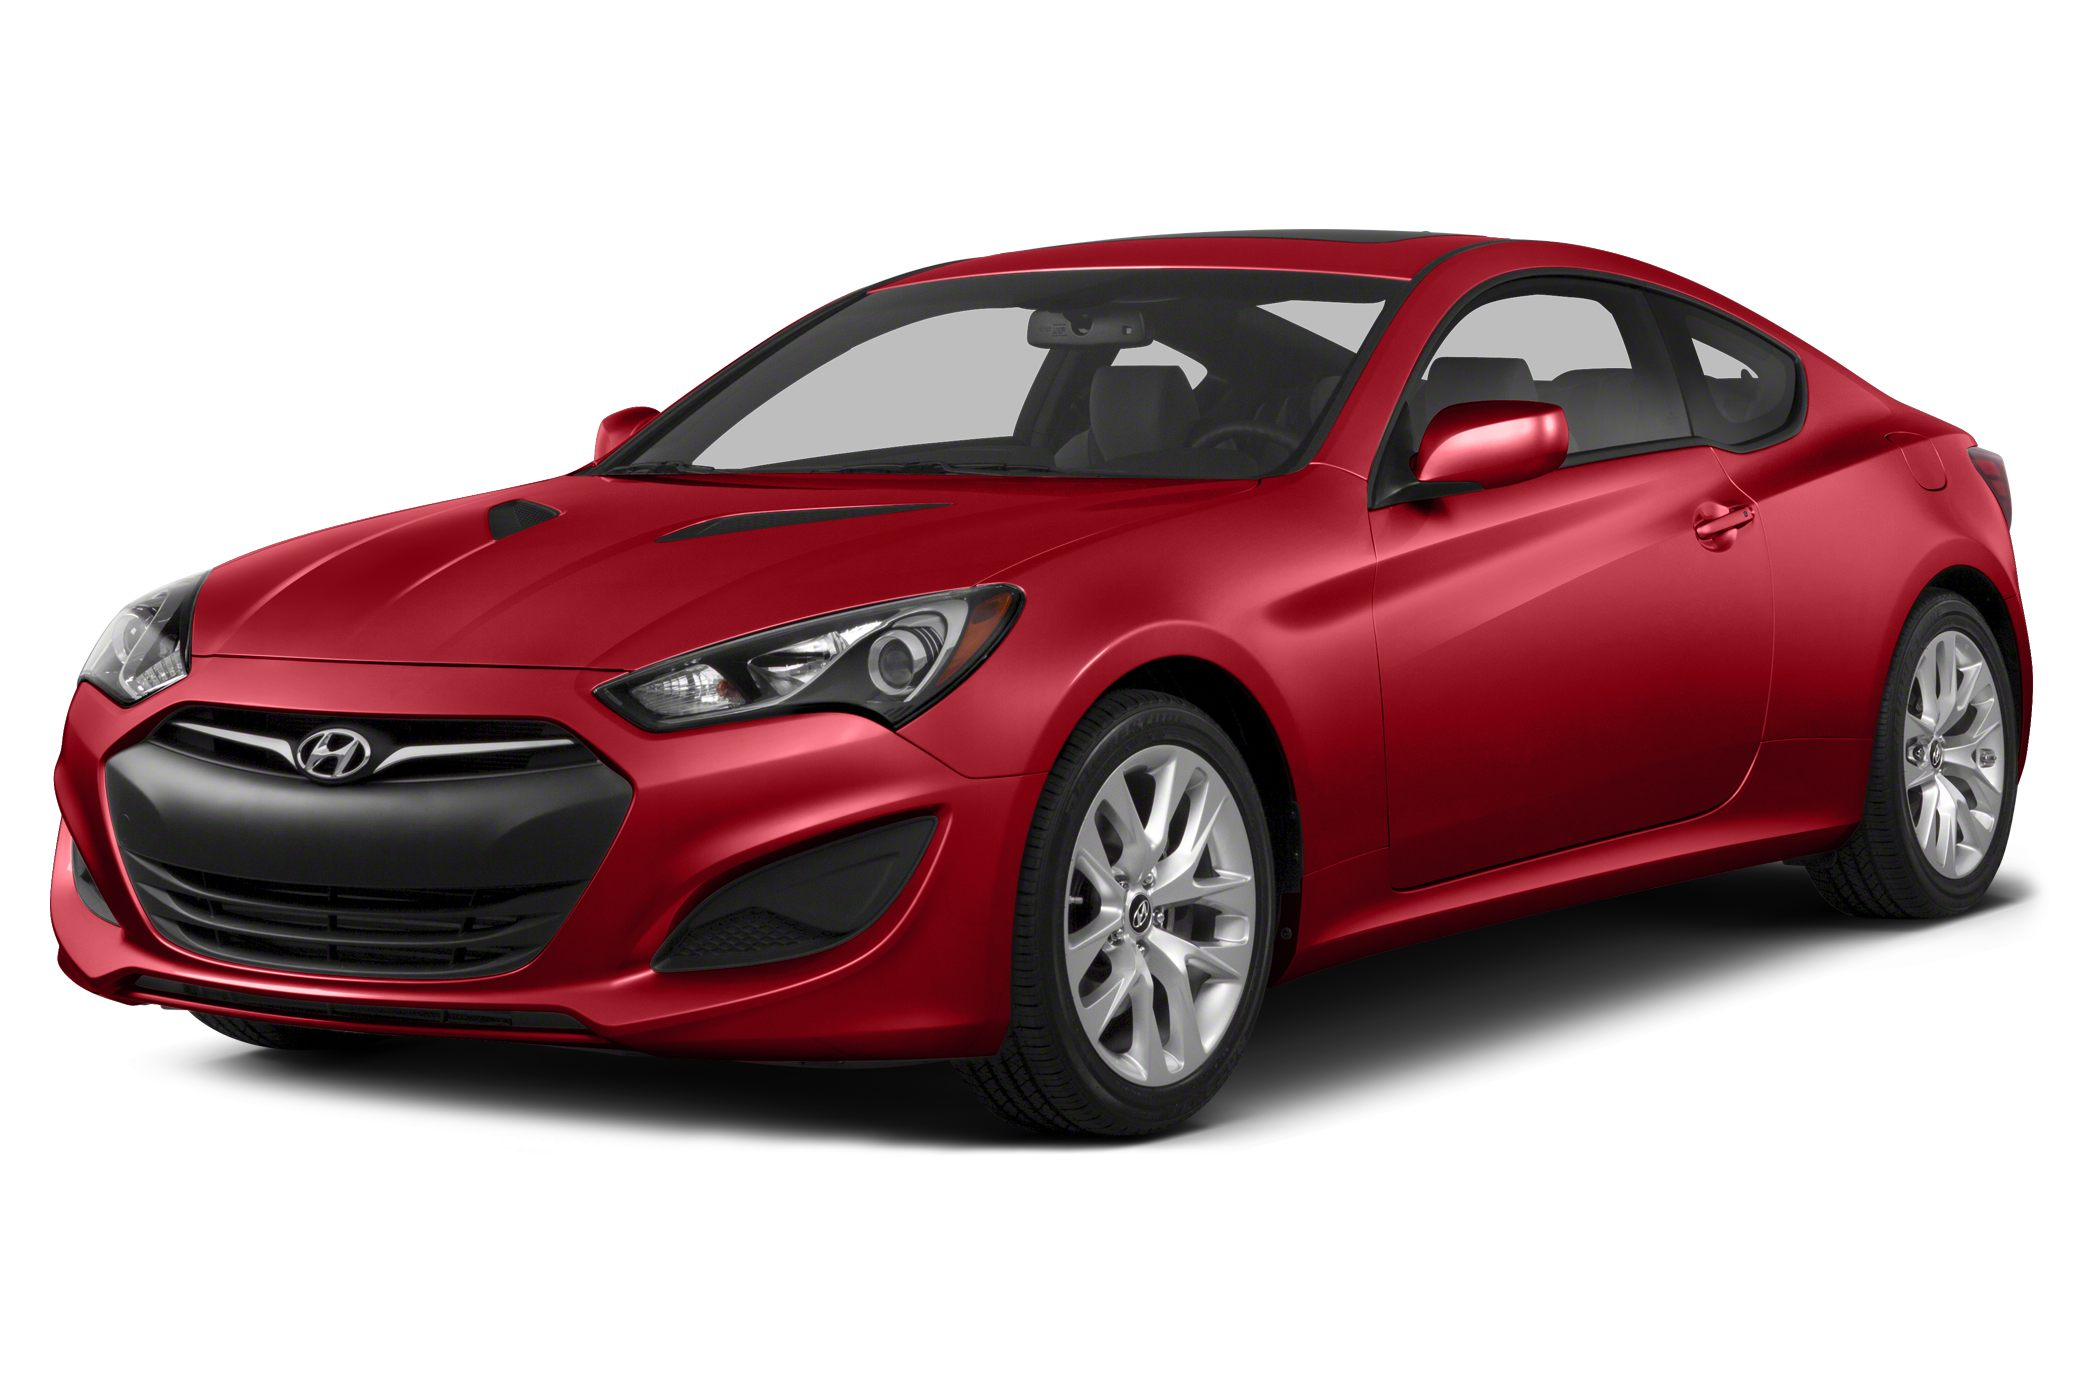 2013 Hyundai Genesis Coupe